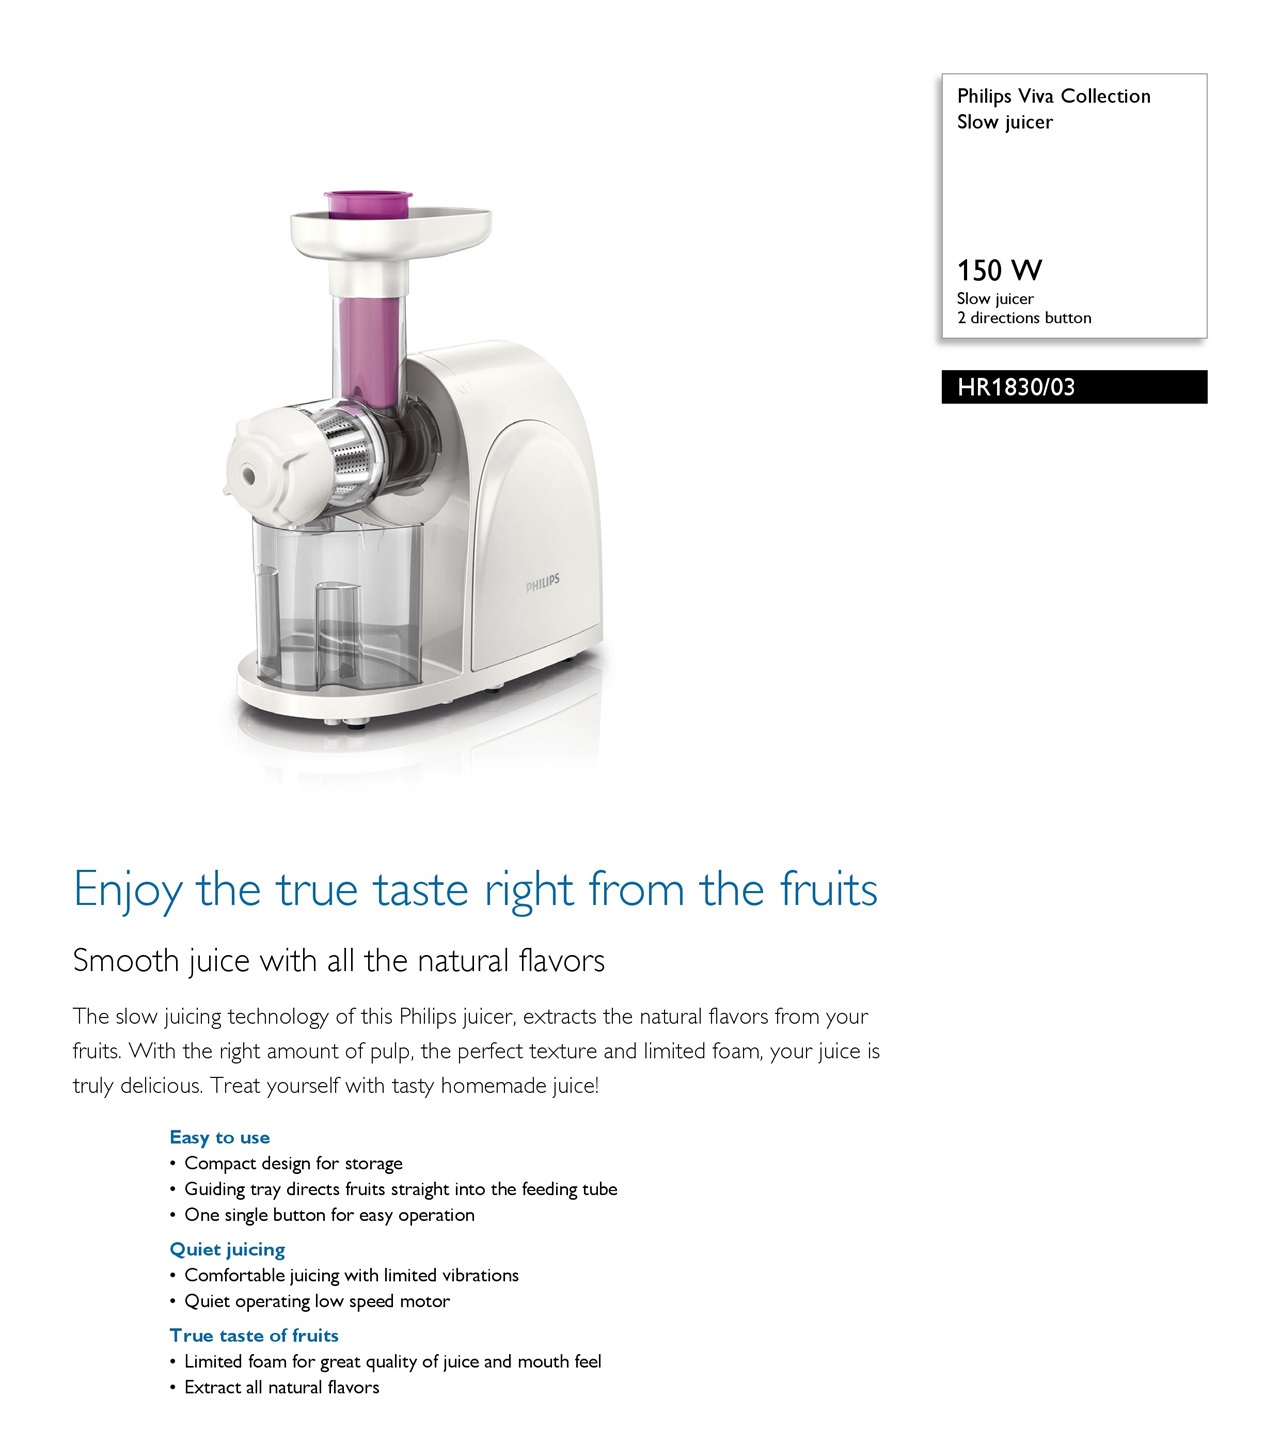 Philips Viva Slow Juicer Hr1830 Review : ET SOUND ENTERPRISE PTE LTD. Philips viva Collection Slow Juicer HR1830